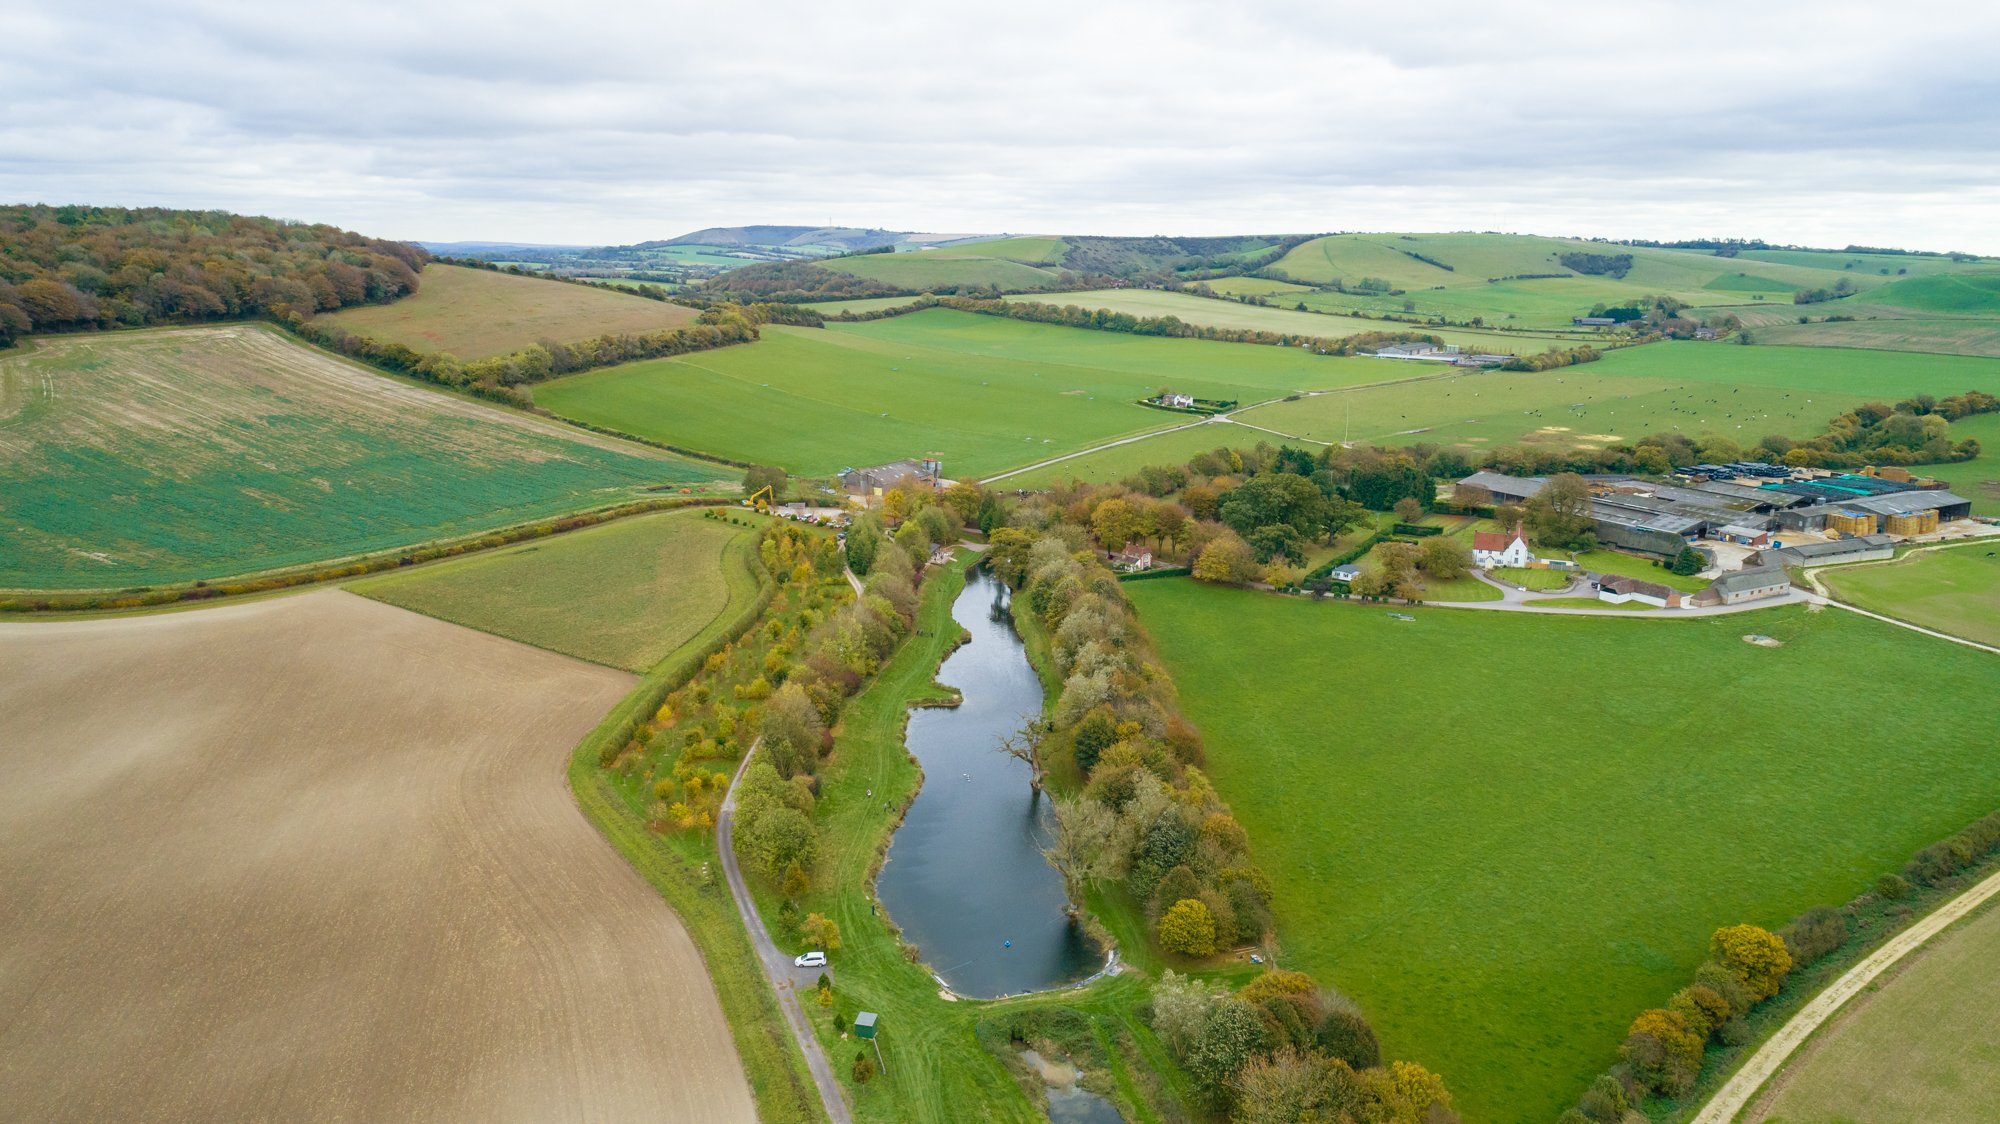 An aerial photograph of the fishing lake at Meon Springs